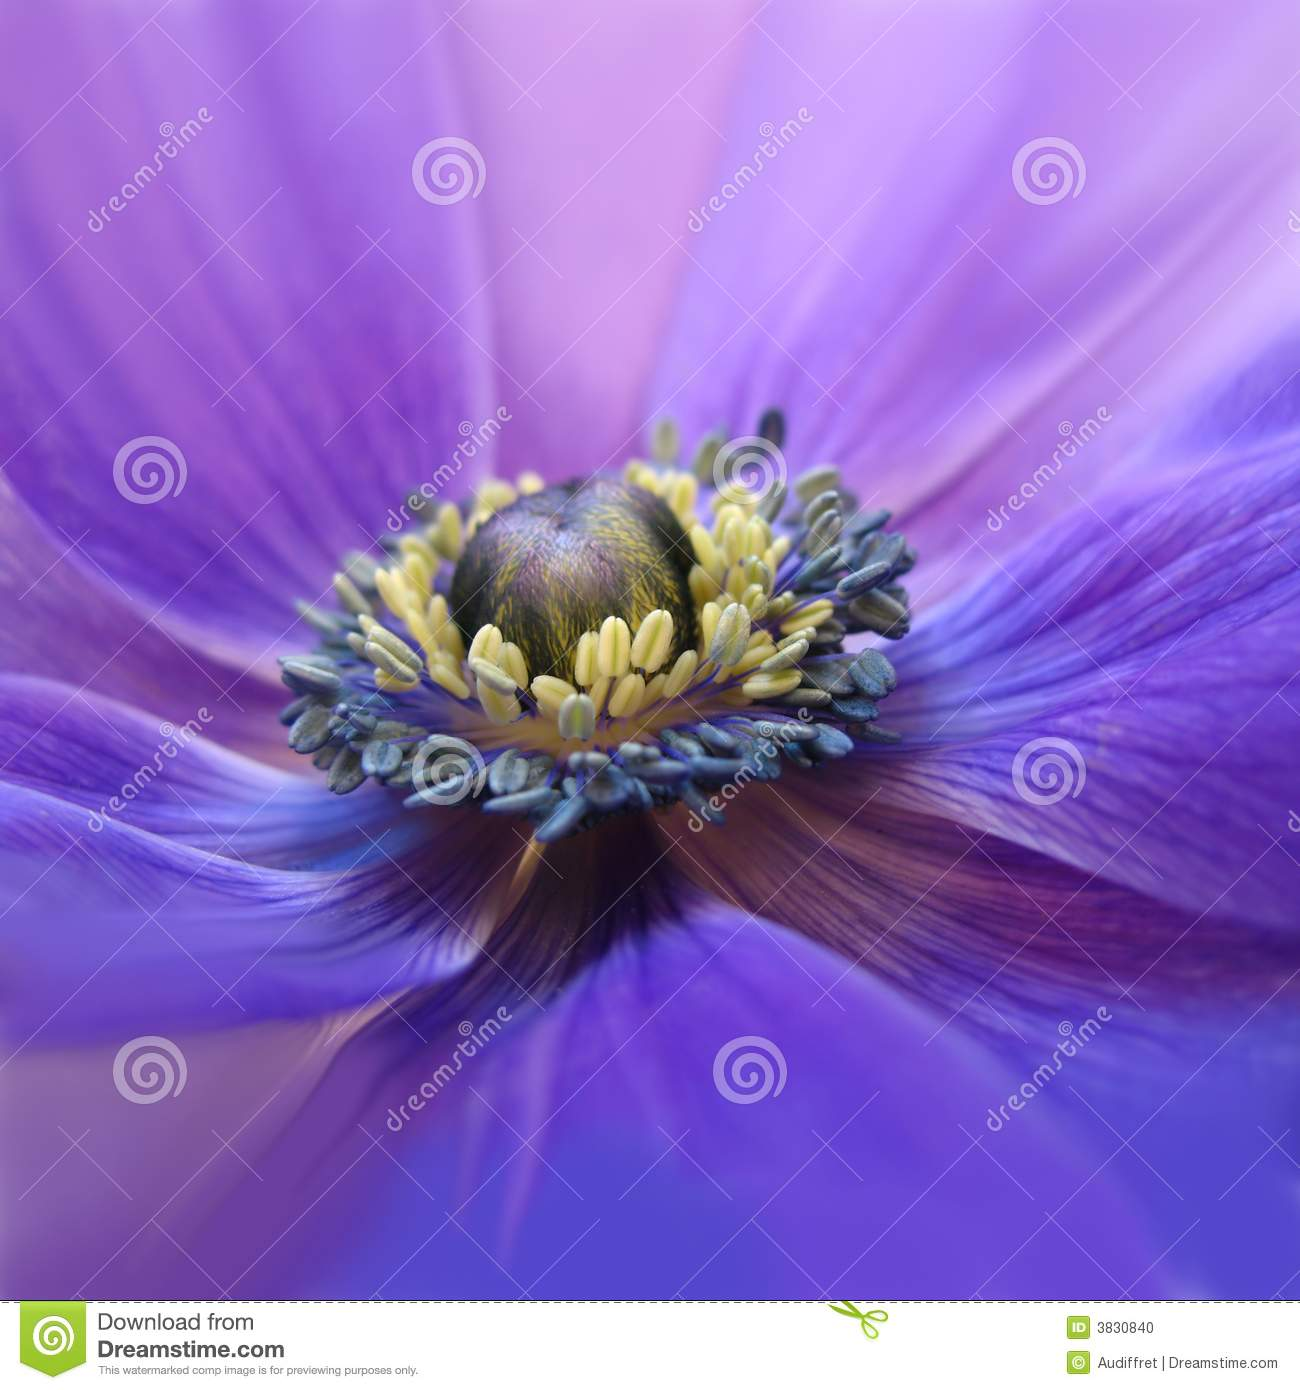 Flowering purple anemone